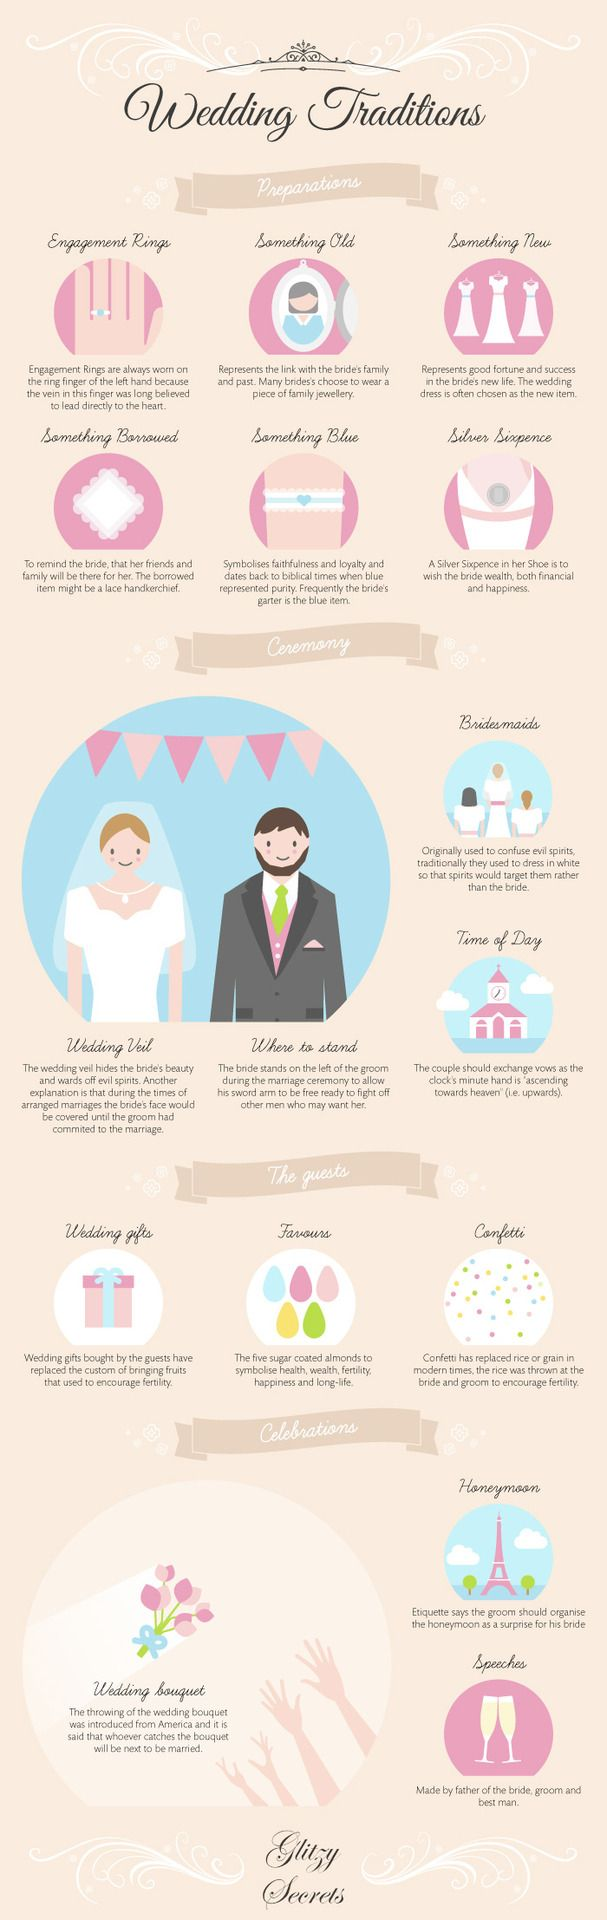 Why do we wear wedding rings on the left hand? Bridesmaids to confuse evil spirits? Glitzy Secrets put together some fun facts about wedding traditions and the meaning behind them.